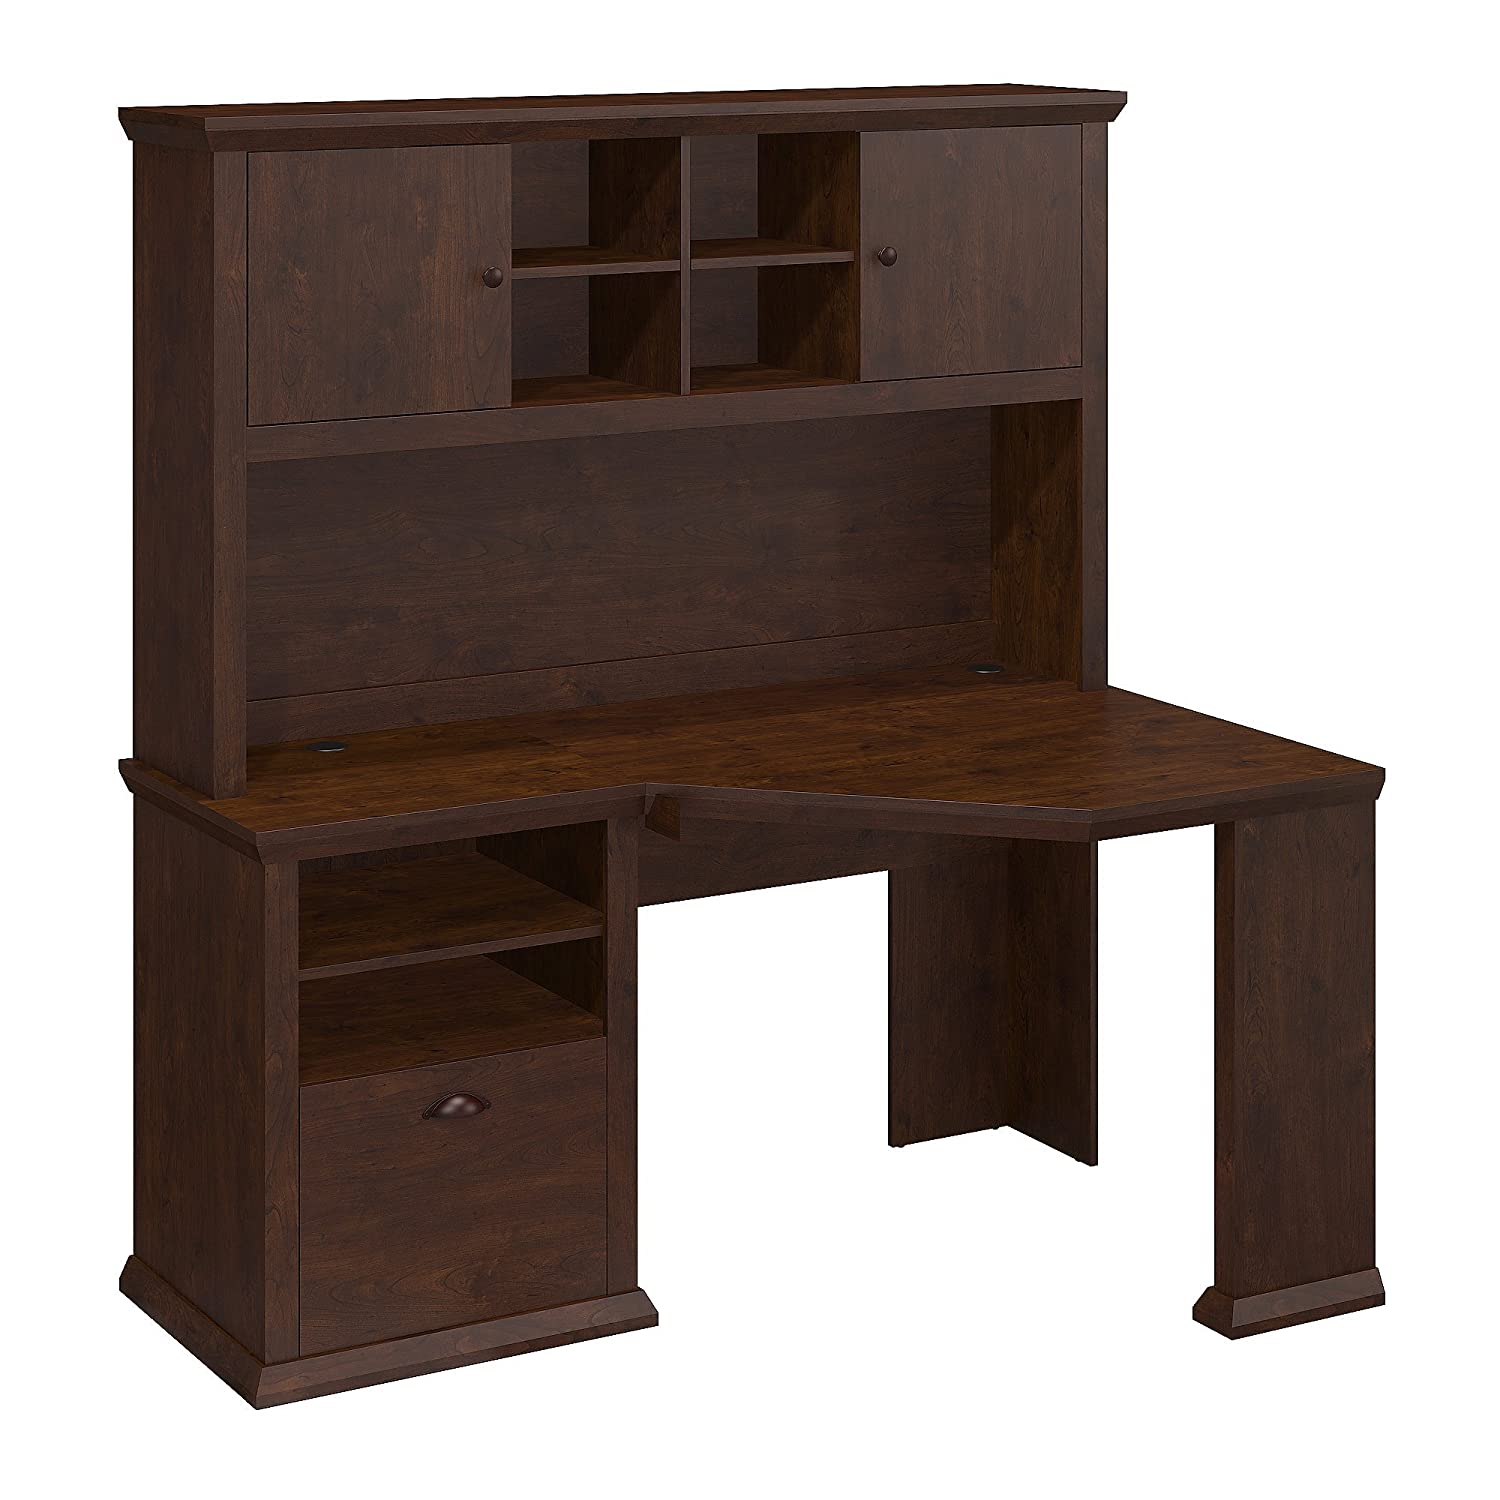 CDM product Yorktown Corner Desk with Hutch and Bookcase in Antique Cherry big image